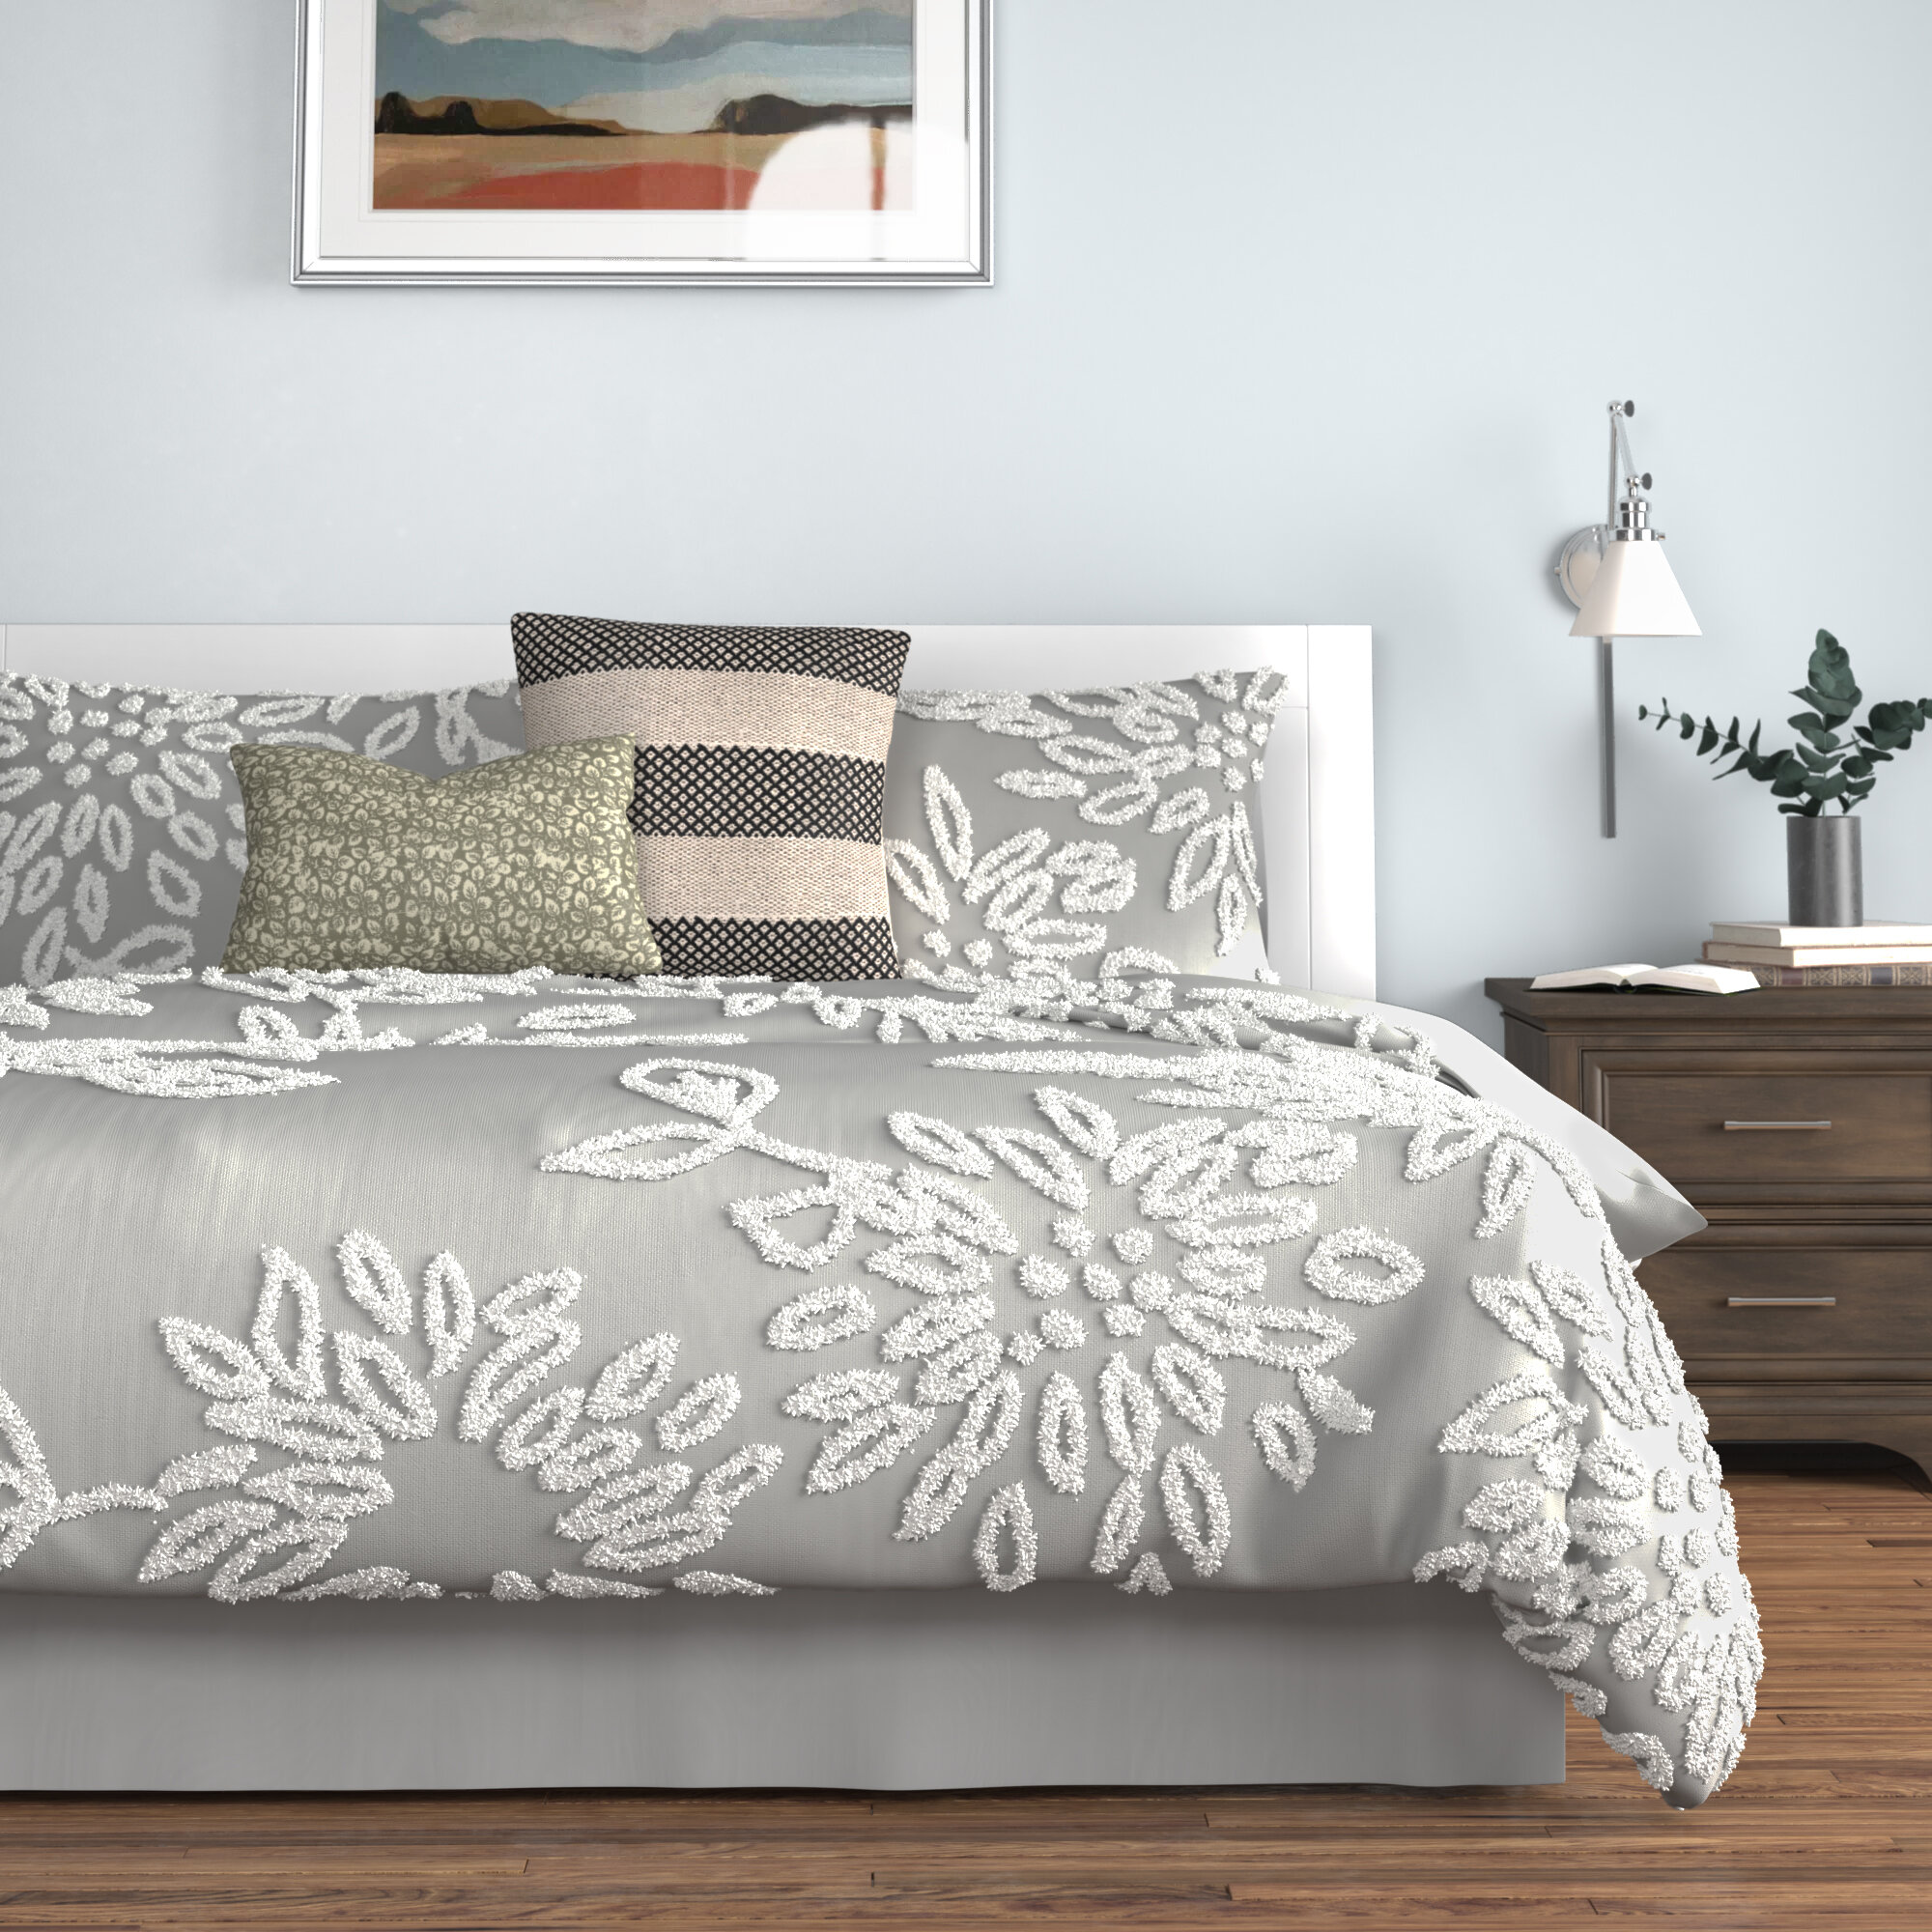 BEAUTIFUL CHIC GREY RUFFLED TUFTED RUCHE DAYBED DAY BED QUILT BEDDING COVER SET